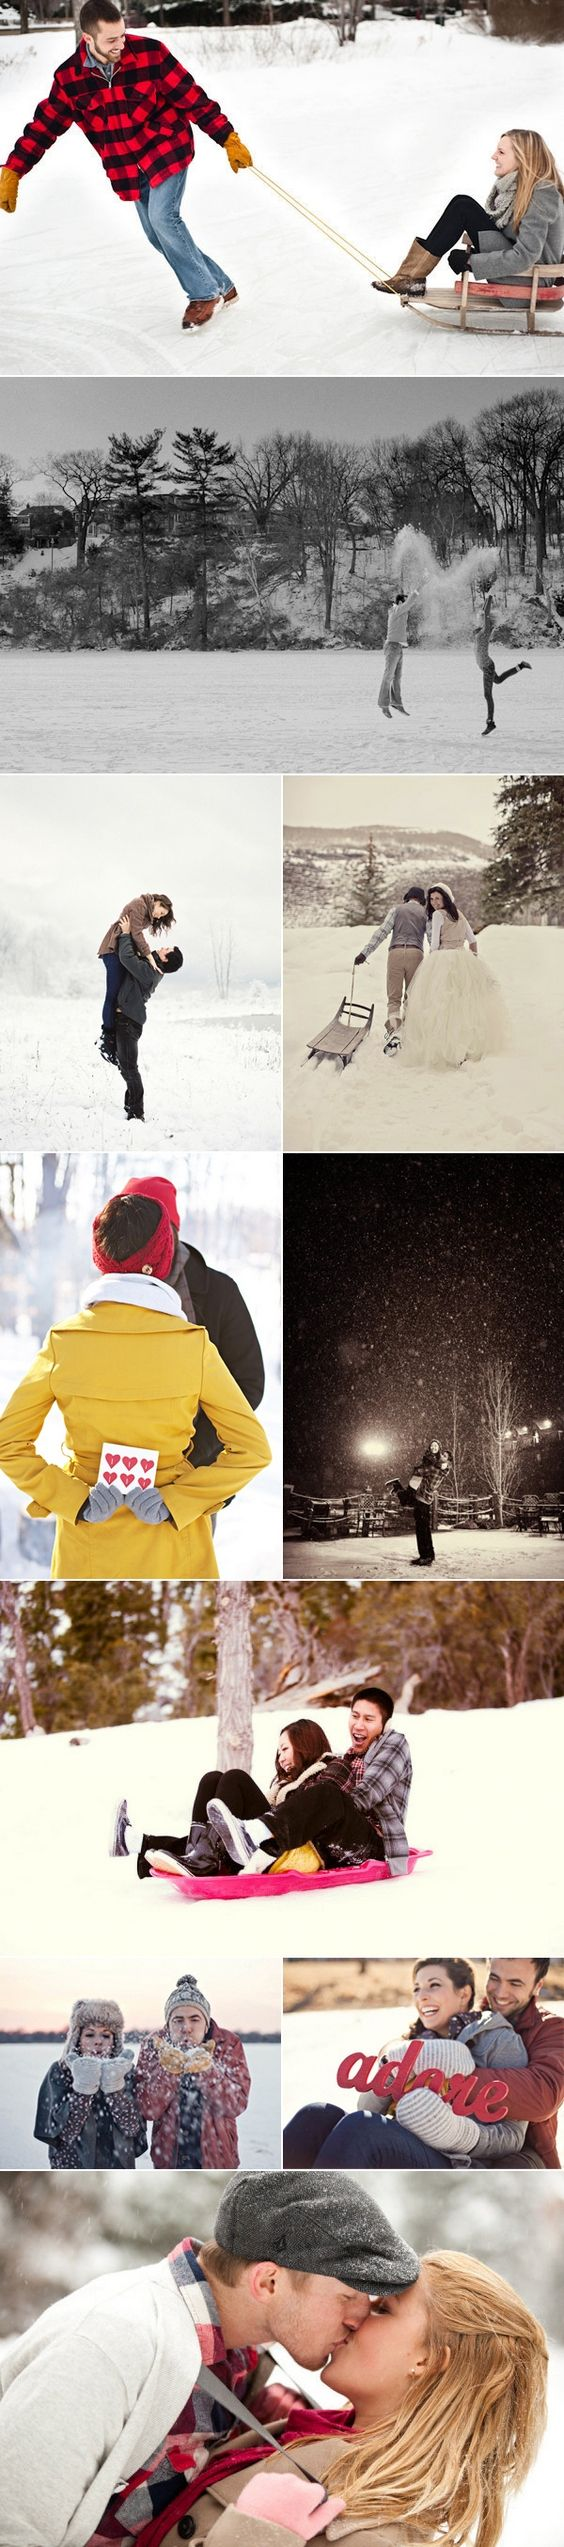 9 best photography images on pinterest drawings boyfriends and